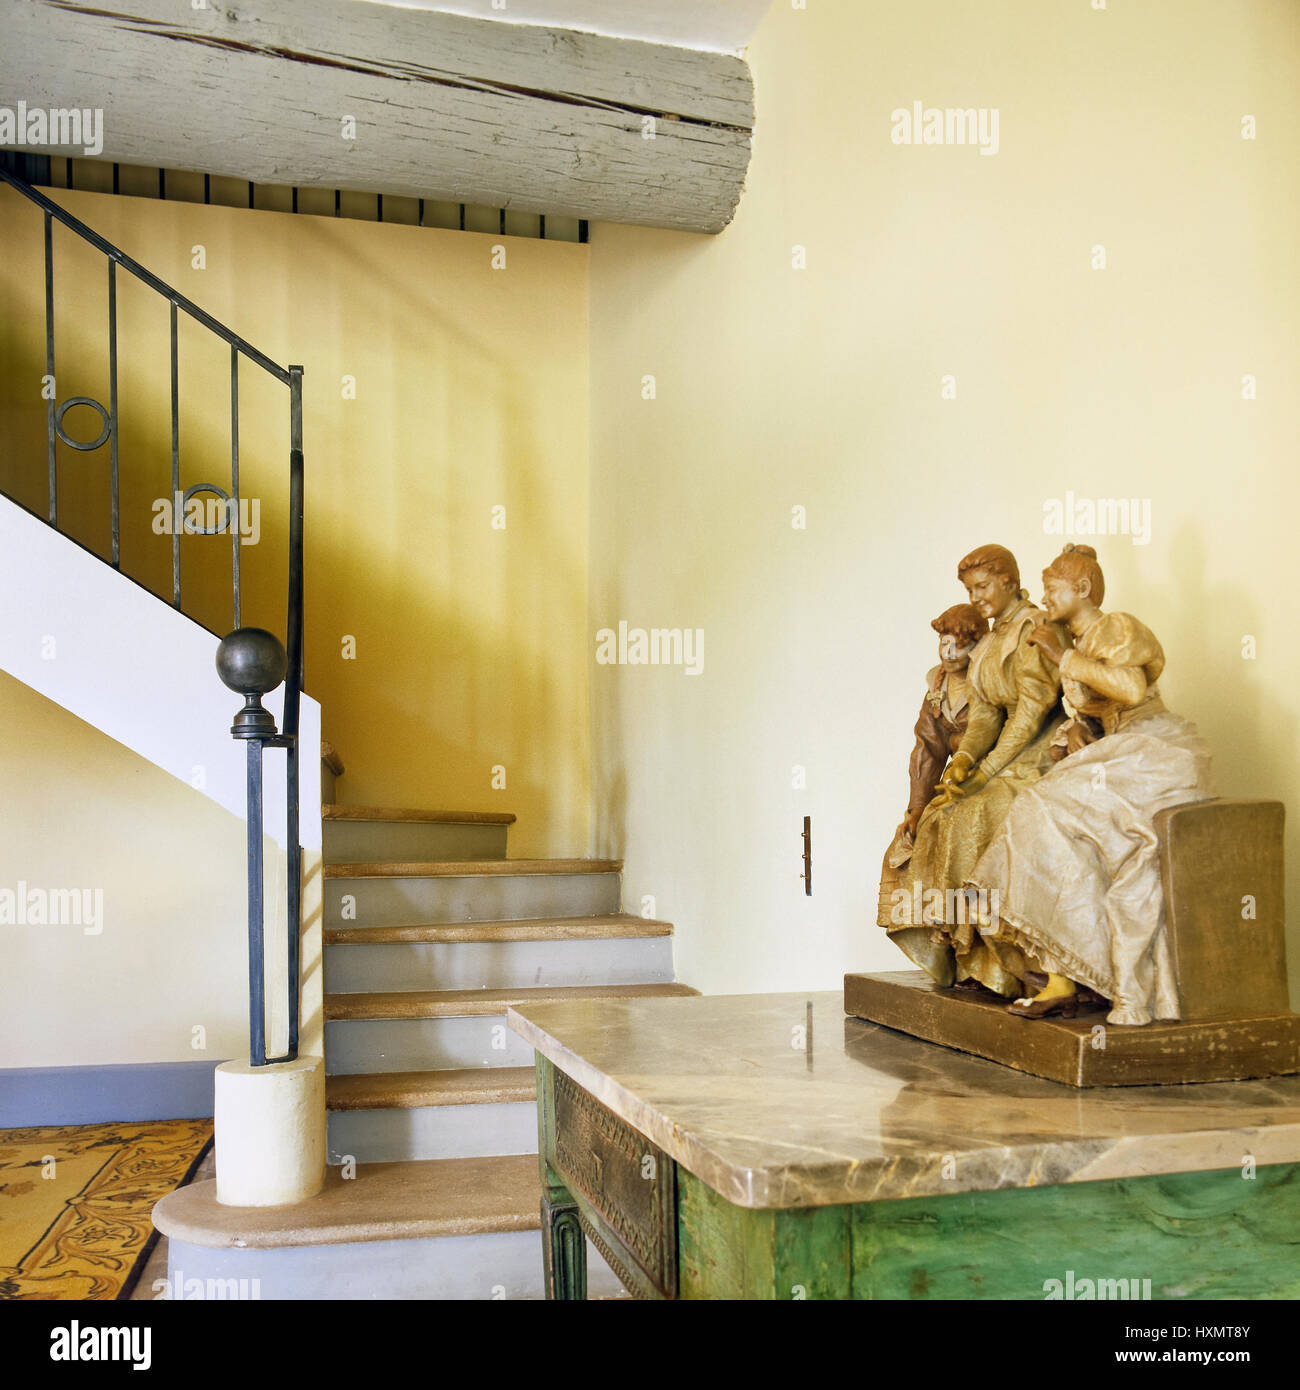 Side table and staircase Stock Photo: 136911739 - Alamy